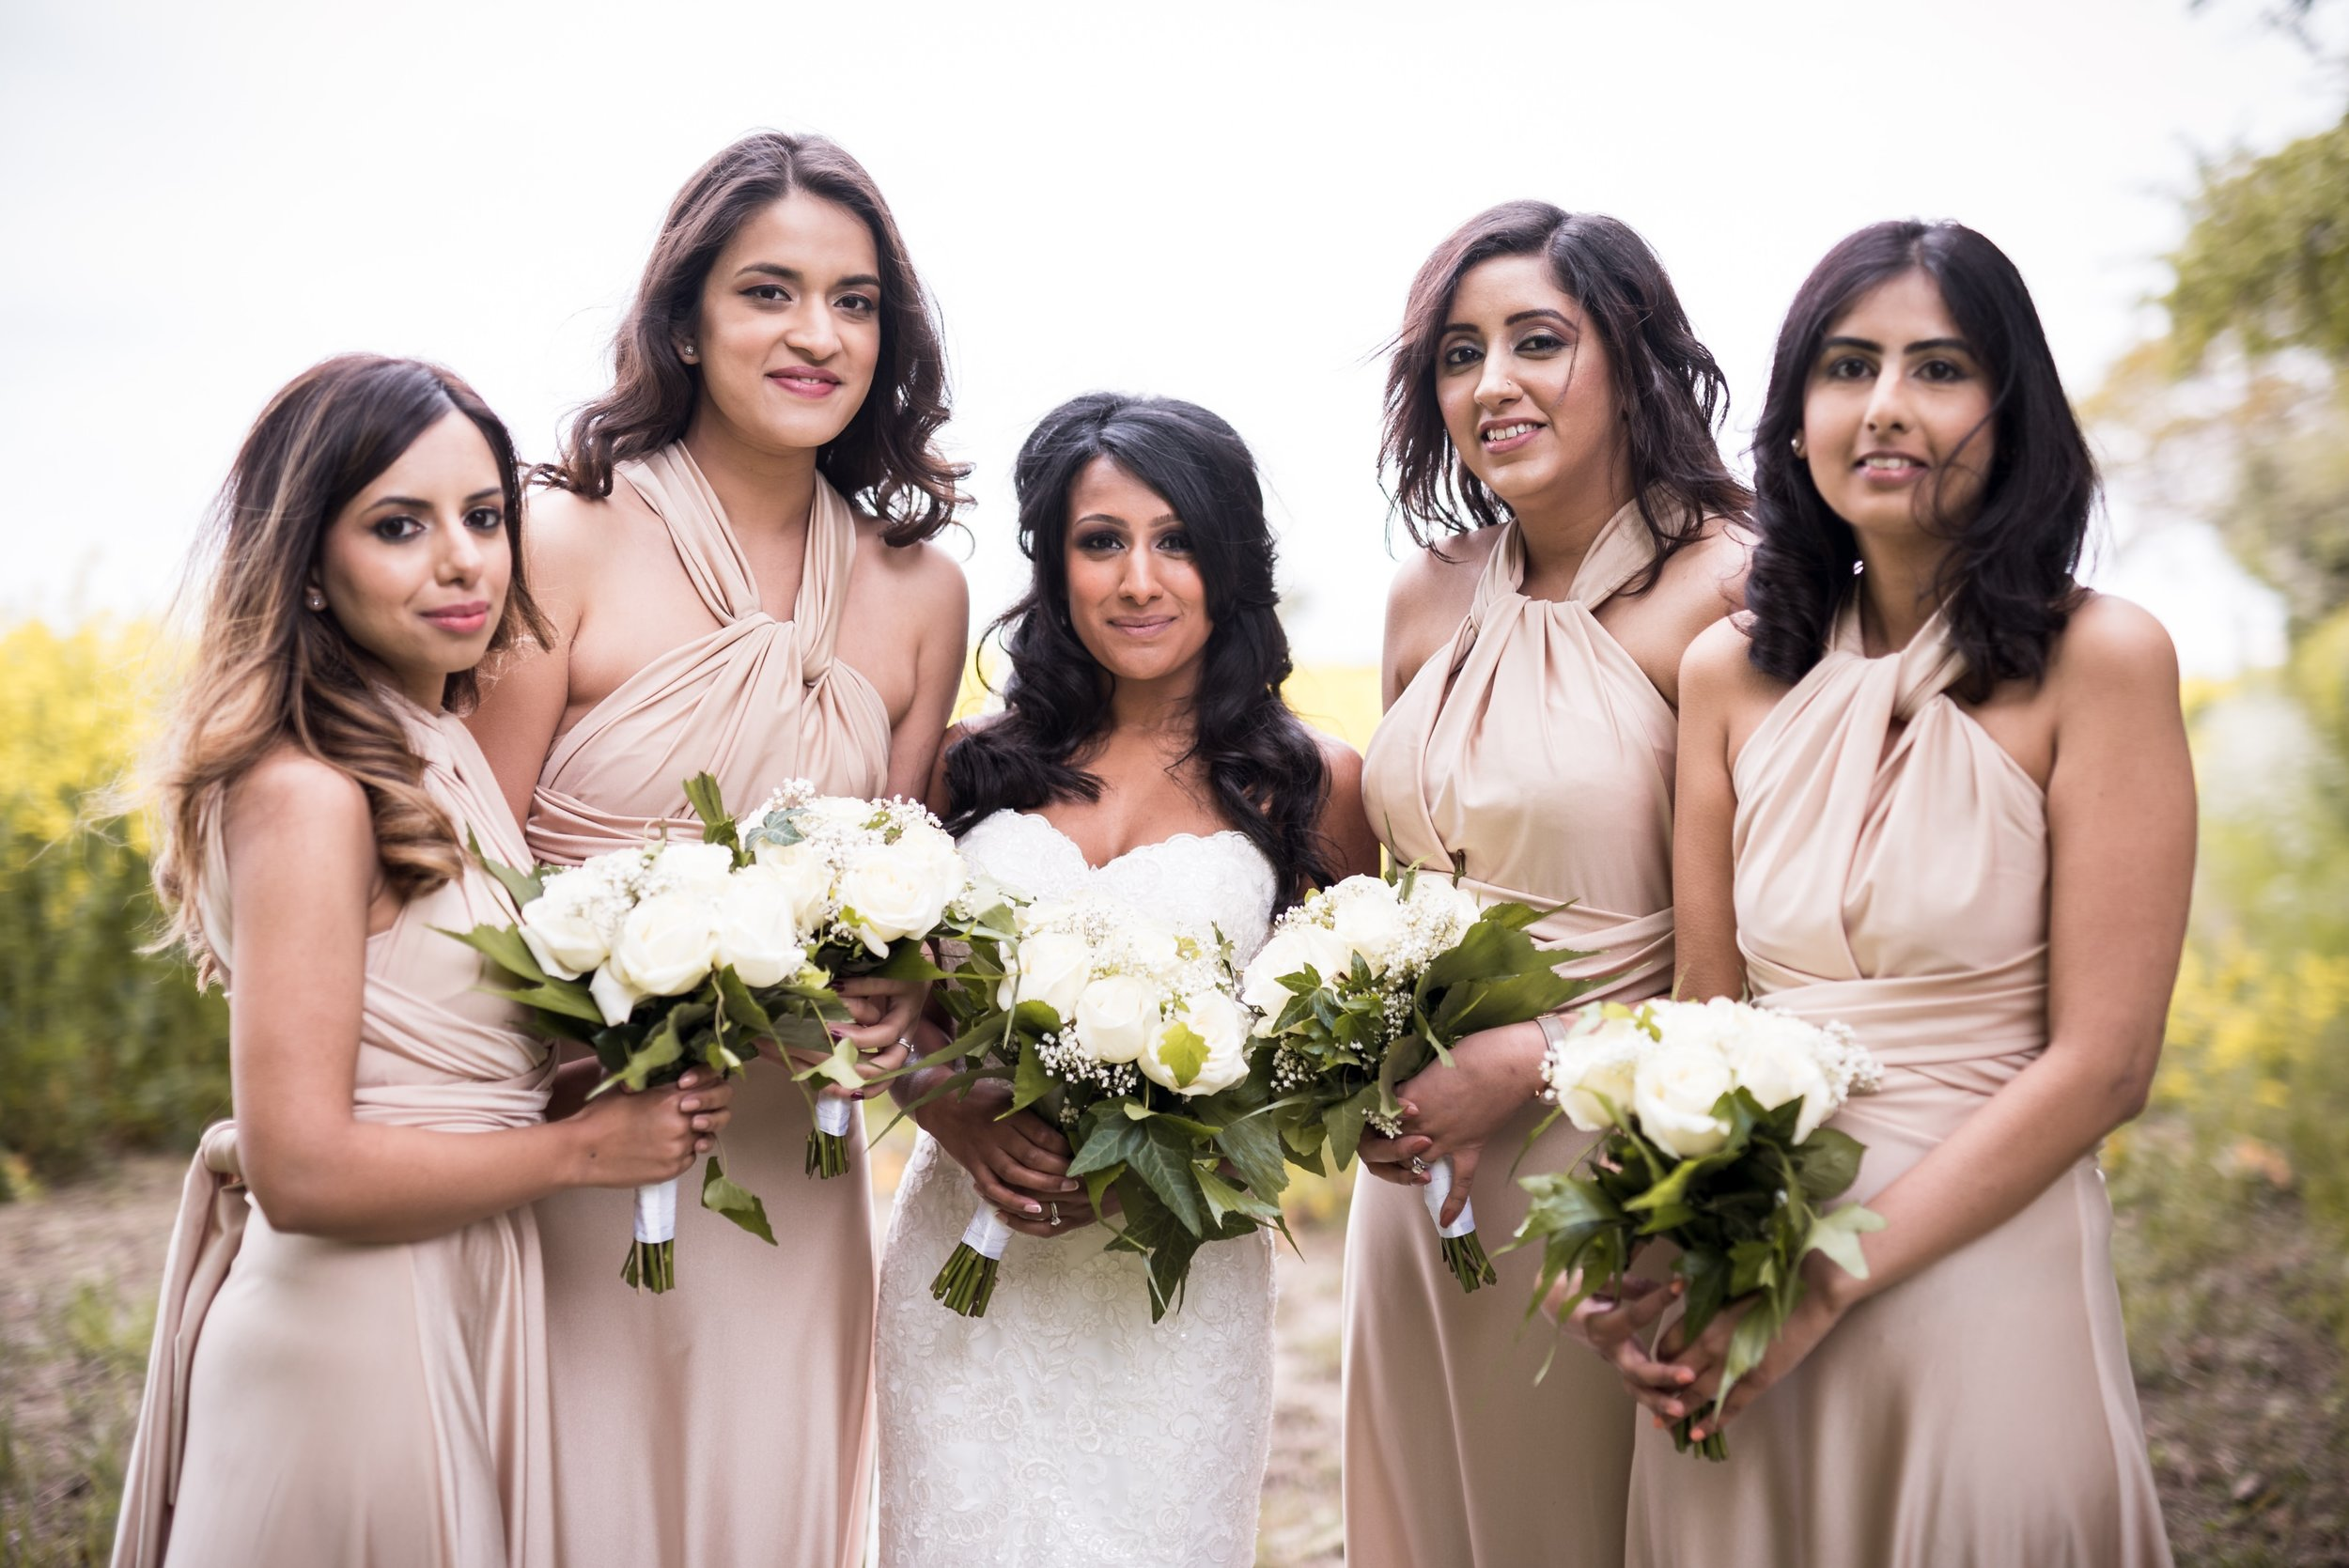 The Normans Bridal Party Photo by www.edpereira.com